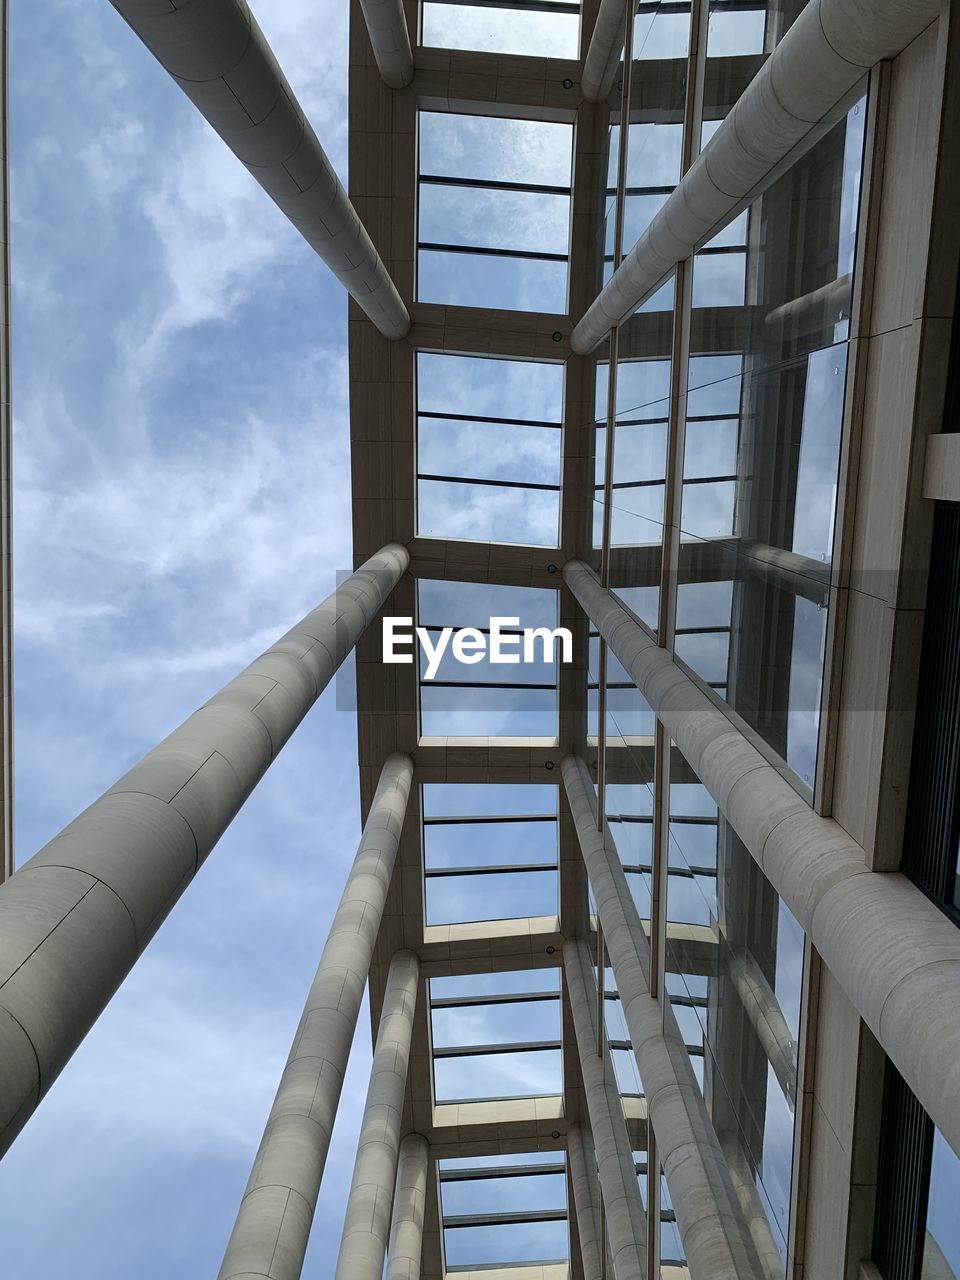 LOW ANGLE VIEW OF PERSON ON STAIRCASE AGAINST SKY